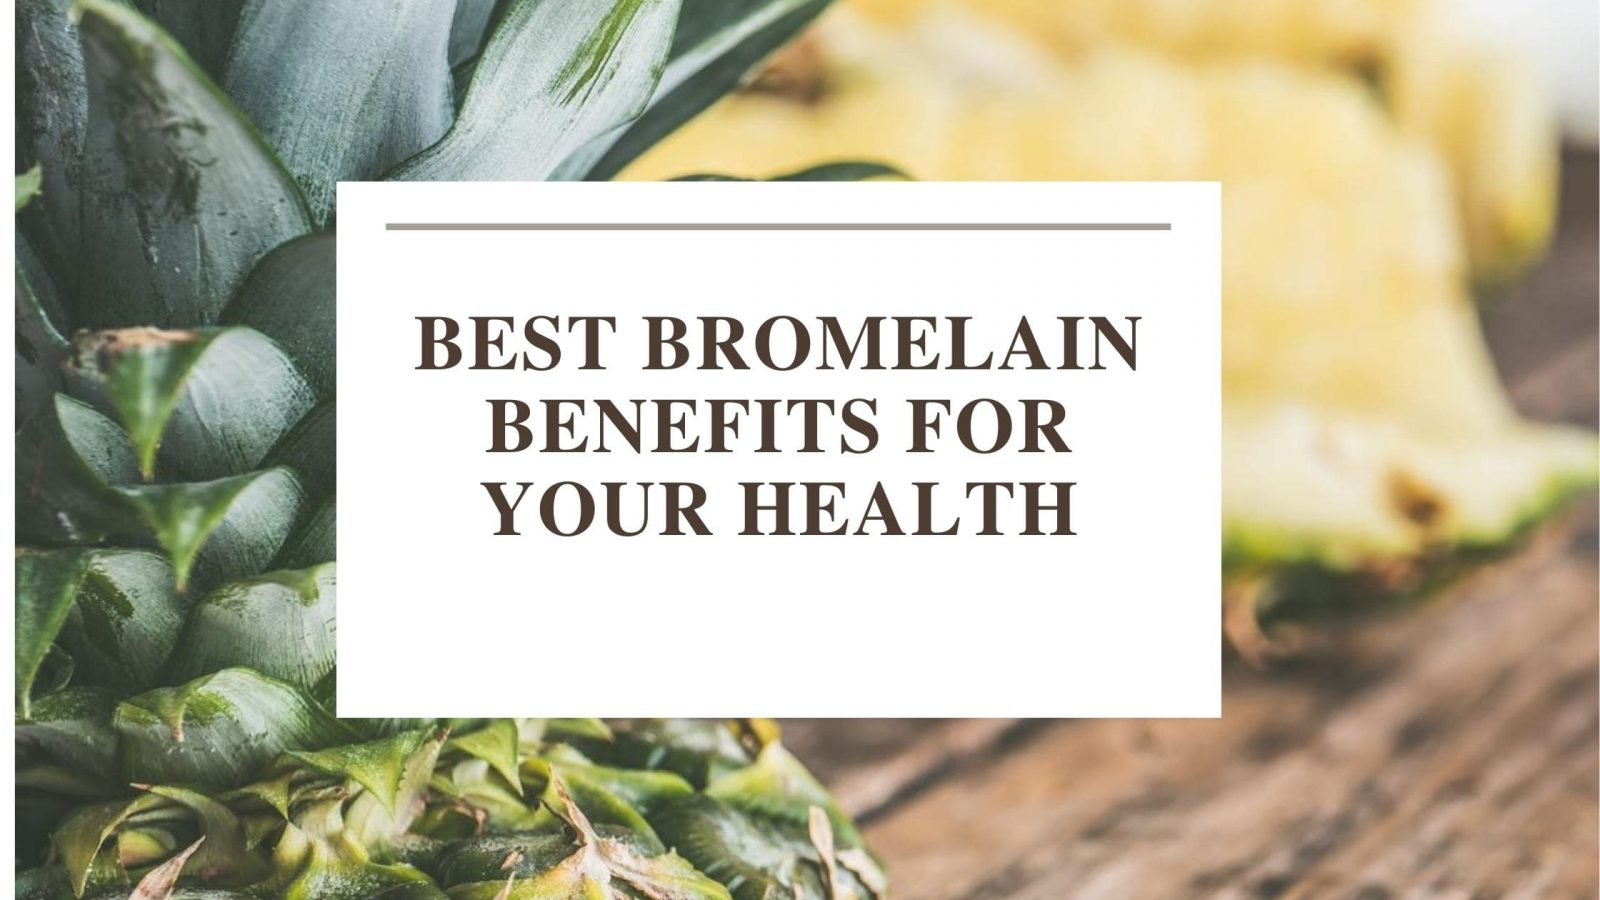 Best Bromelain Benefits for your Health